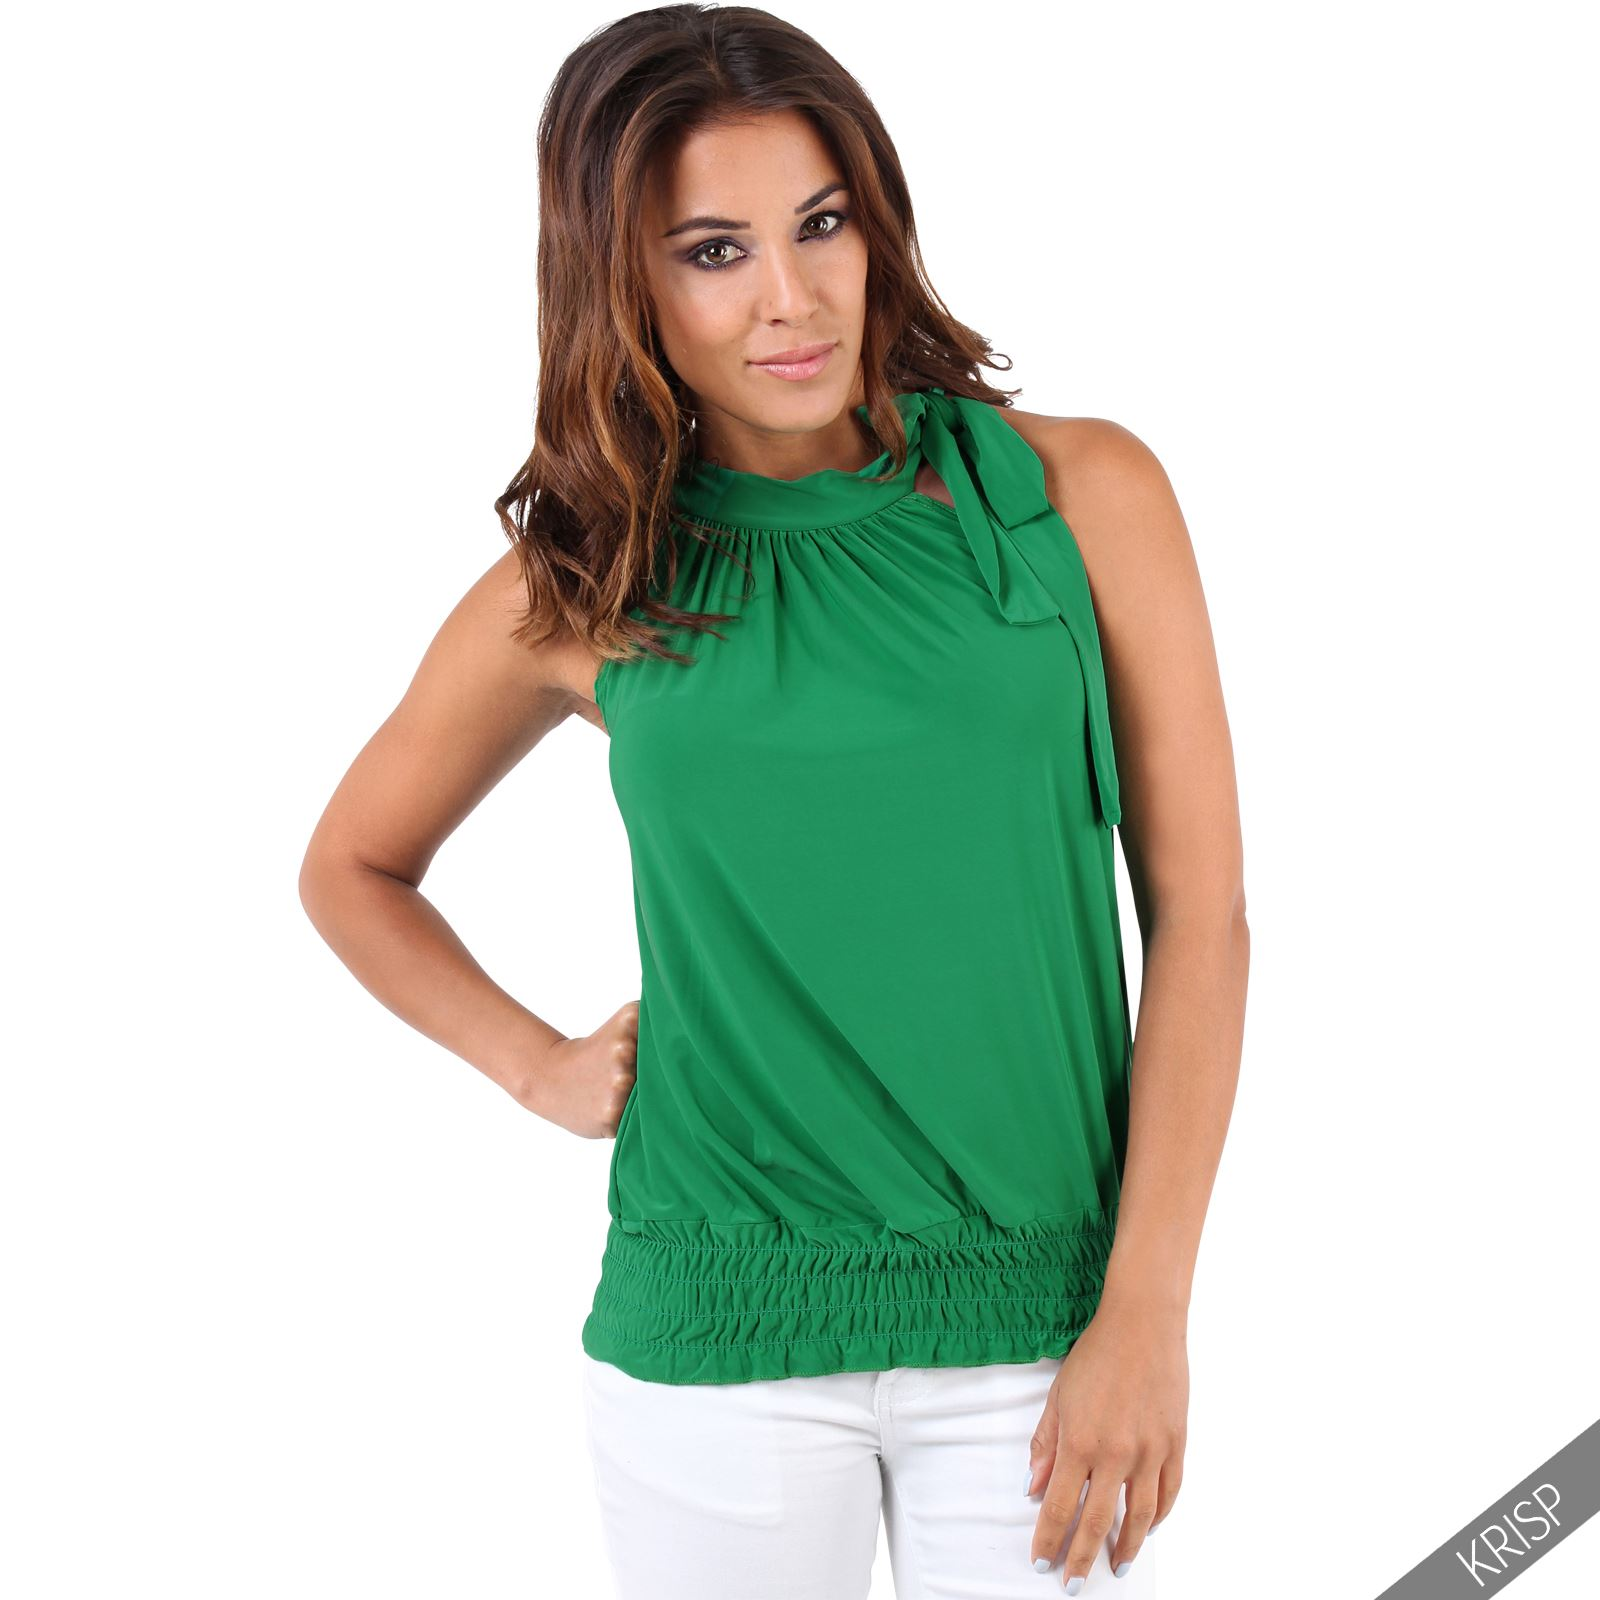 Womens-Ladies-Sleeveless-Blouse-Halter-Neck-Vest-Top-Party-T-Shirt-Plus-Size thumbnail 12